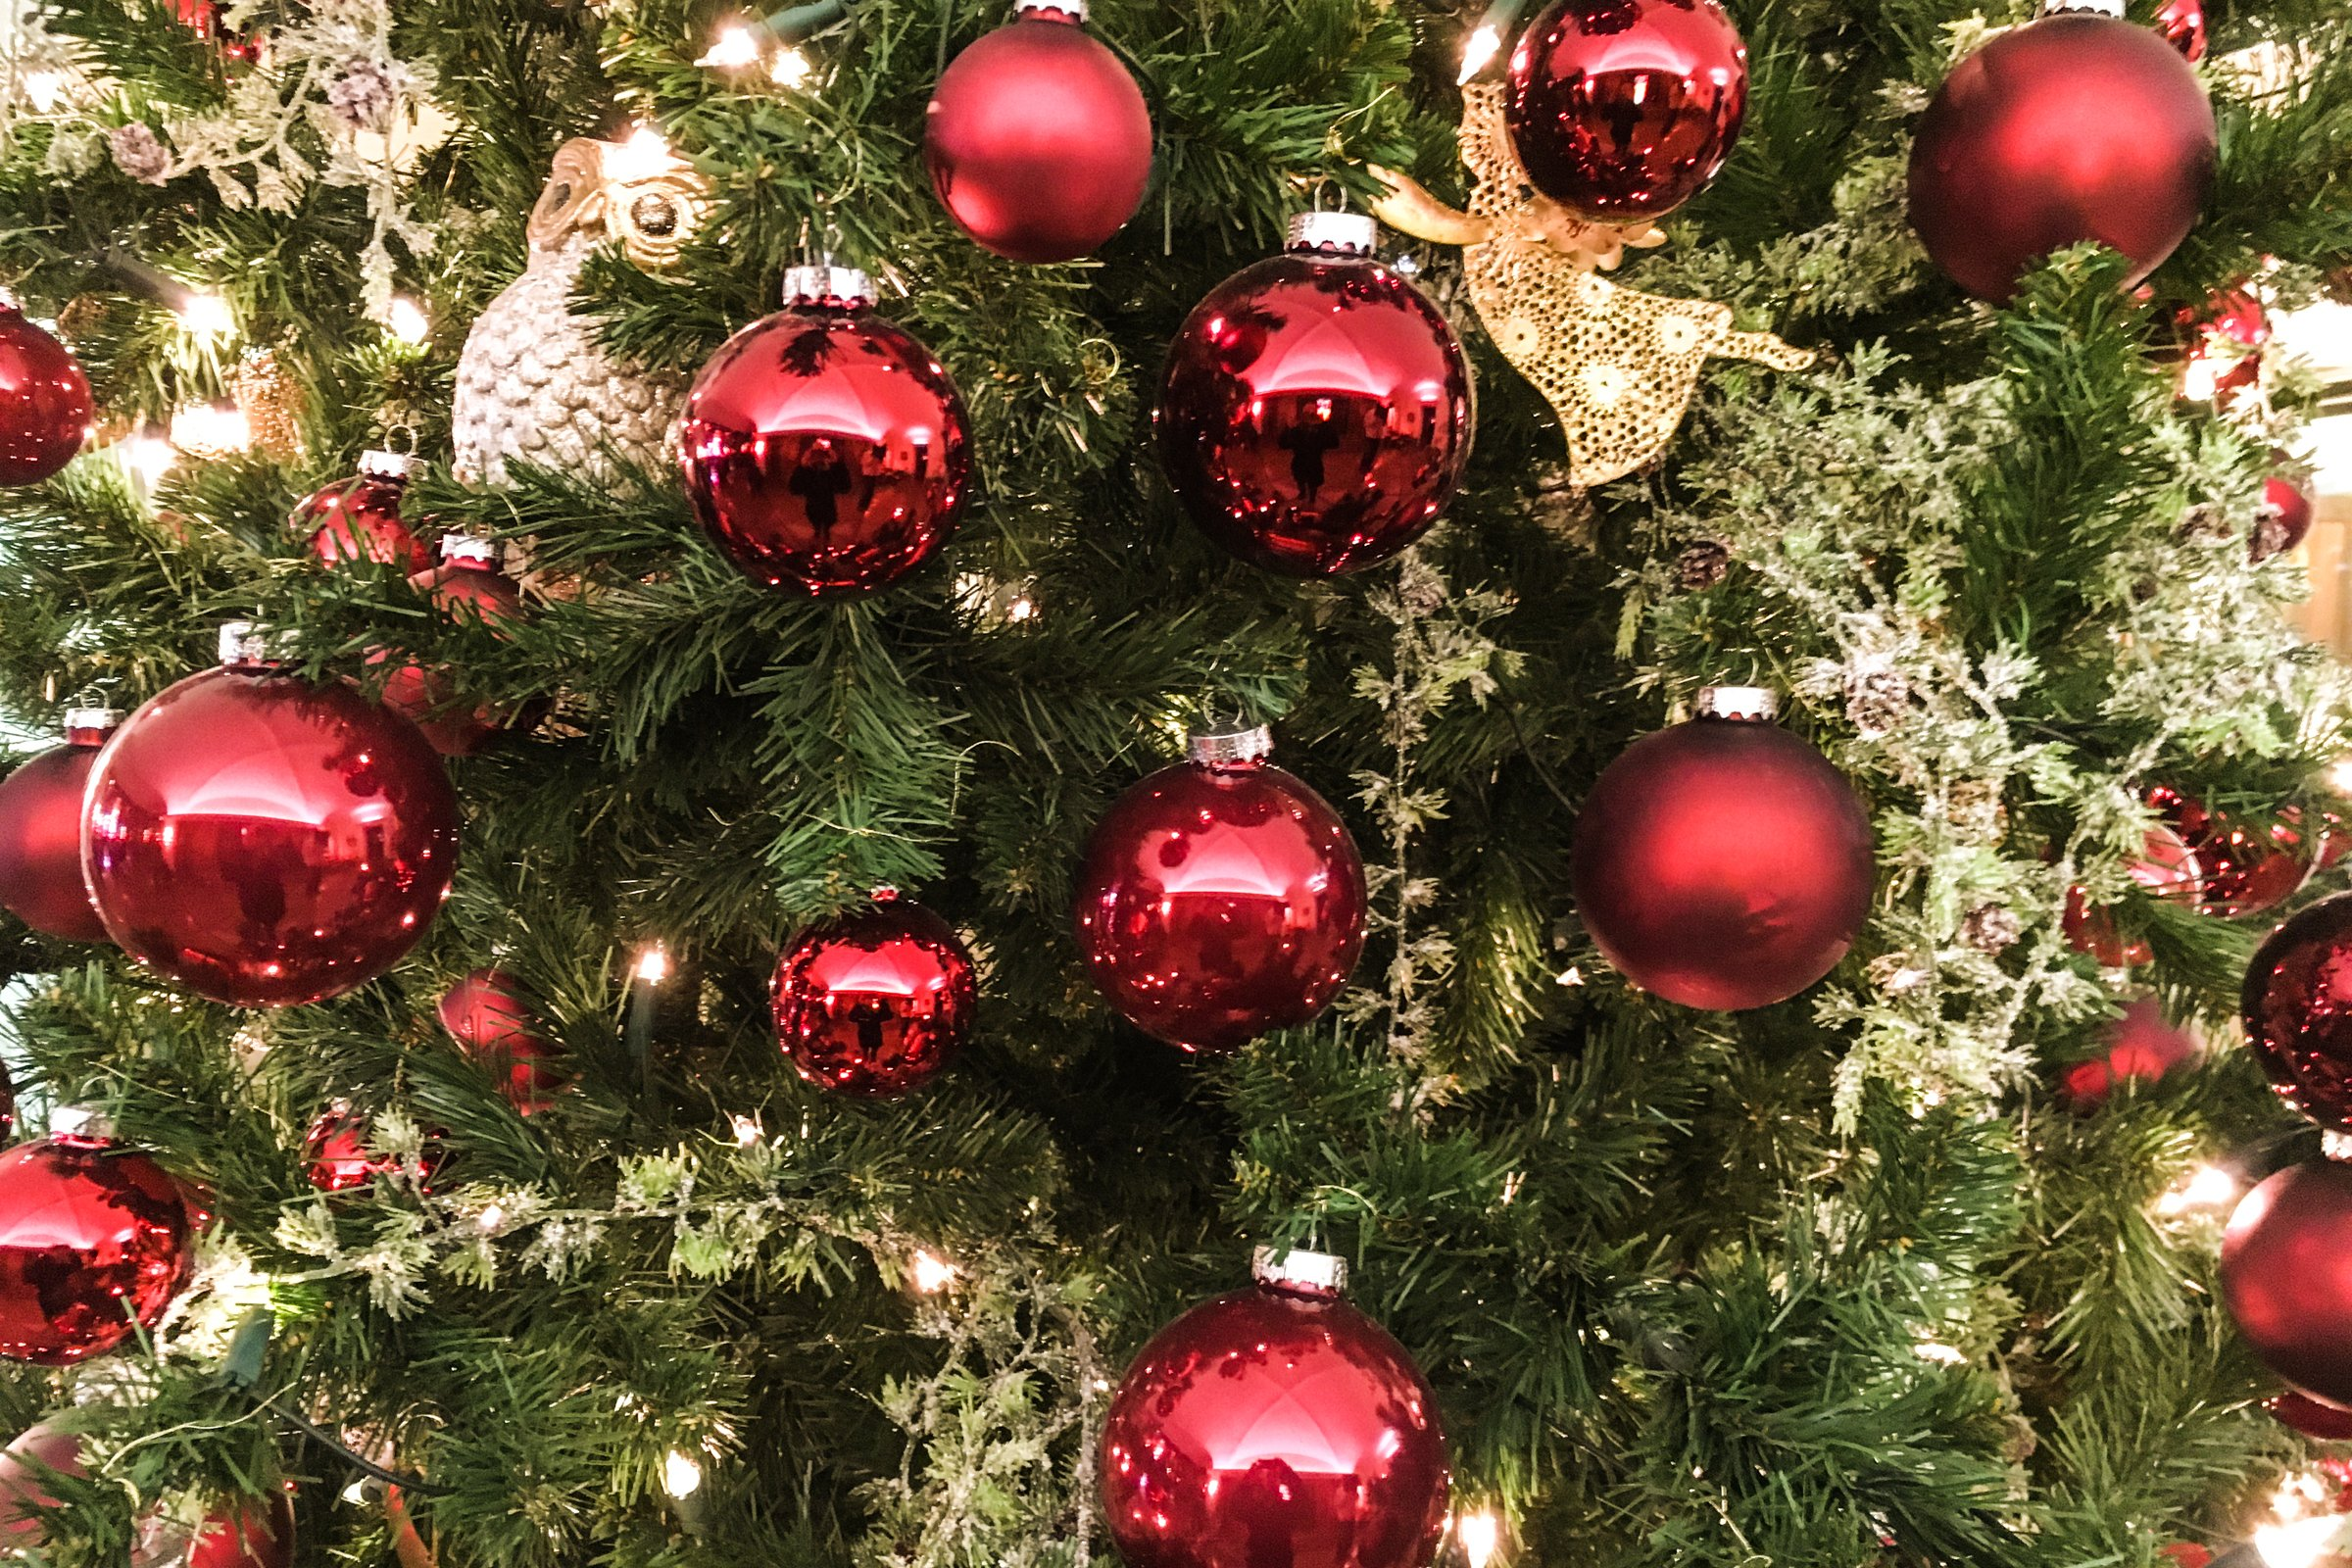 Christmas Tree Balls.Free Stock Photo Of Closeup Of Red Ball Ornaments On